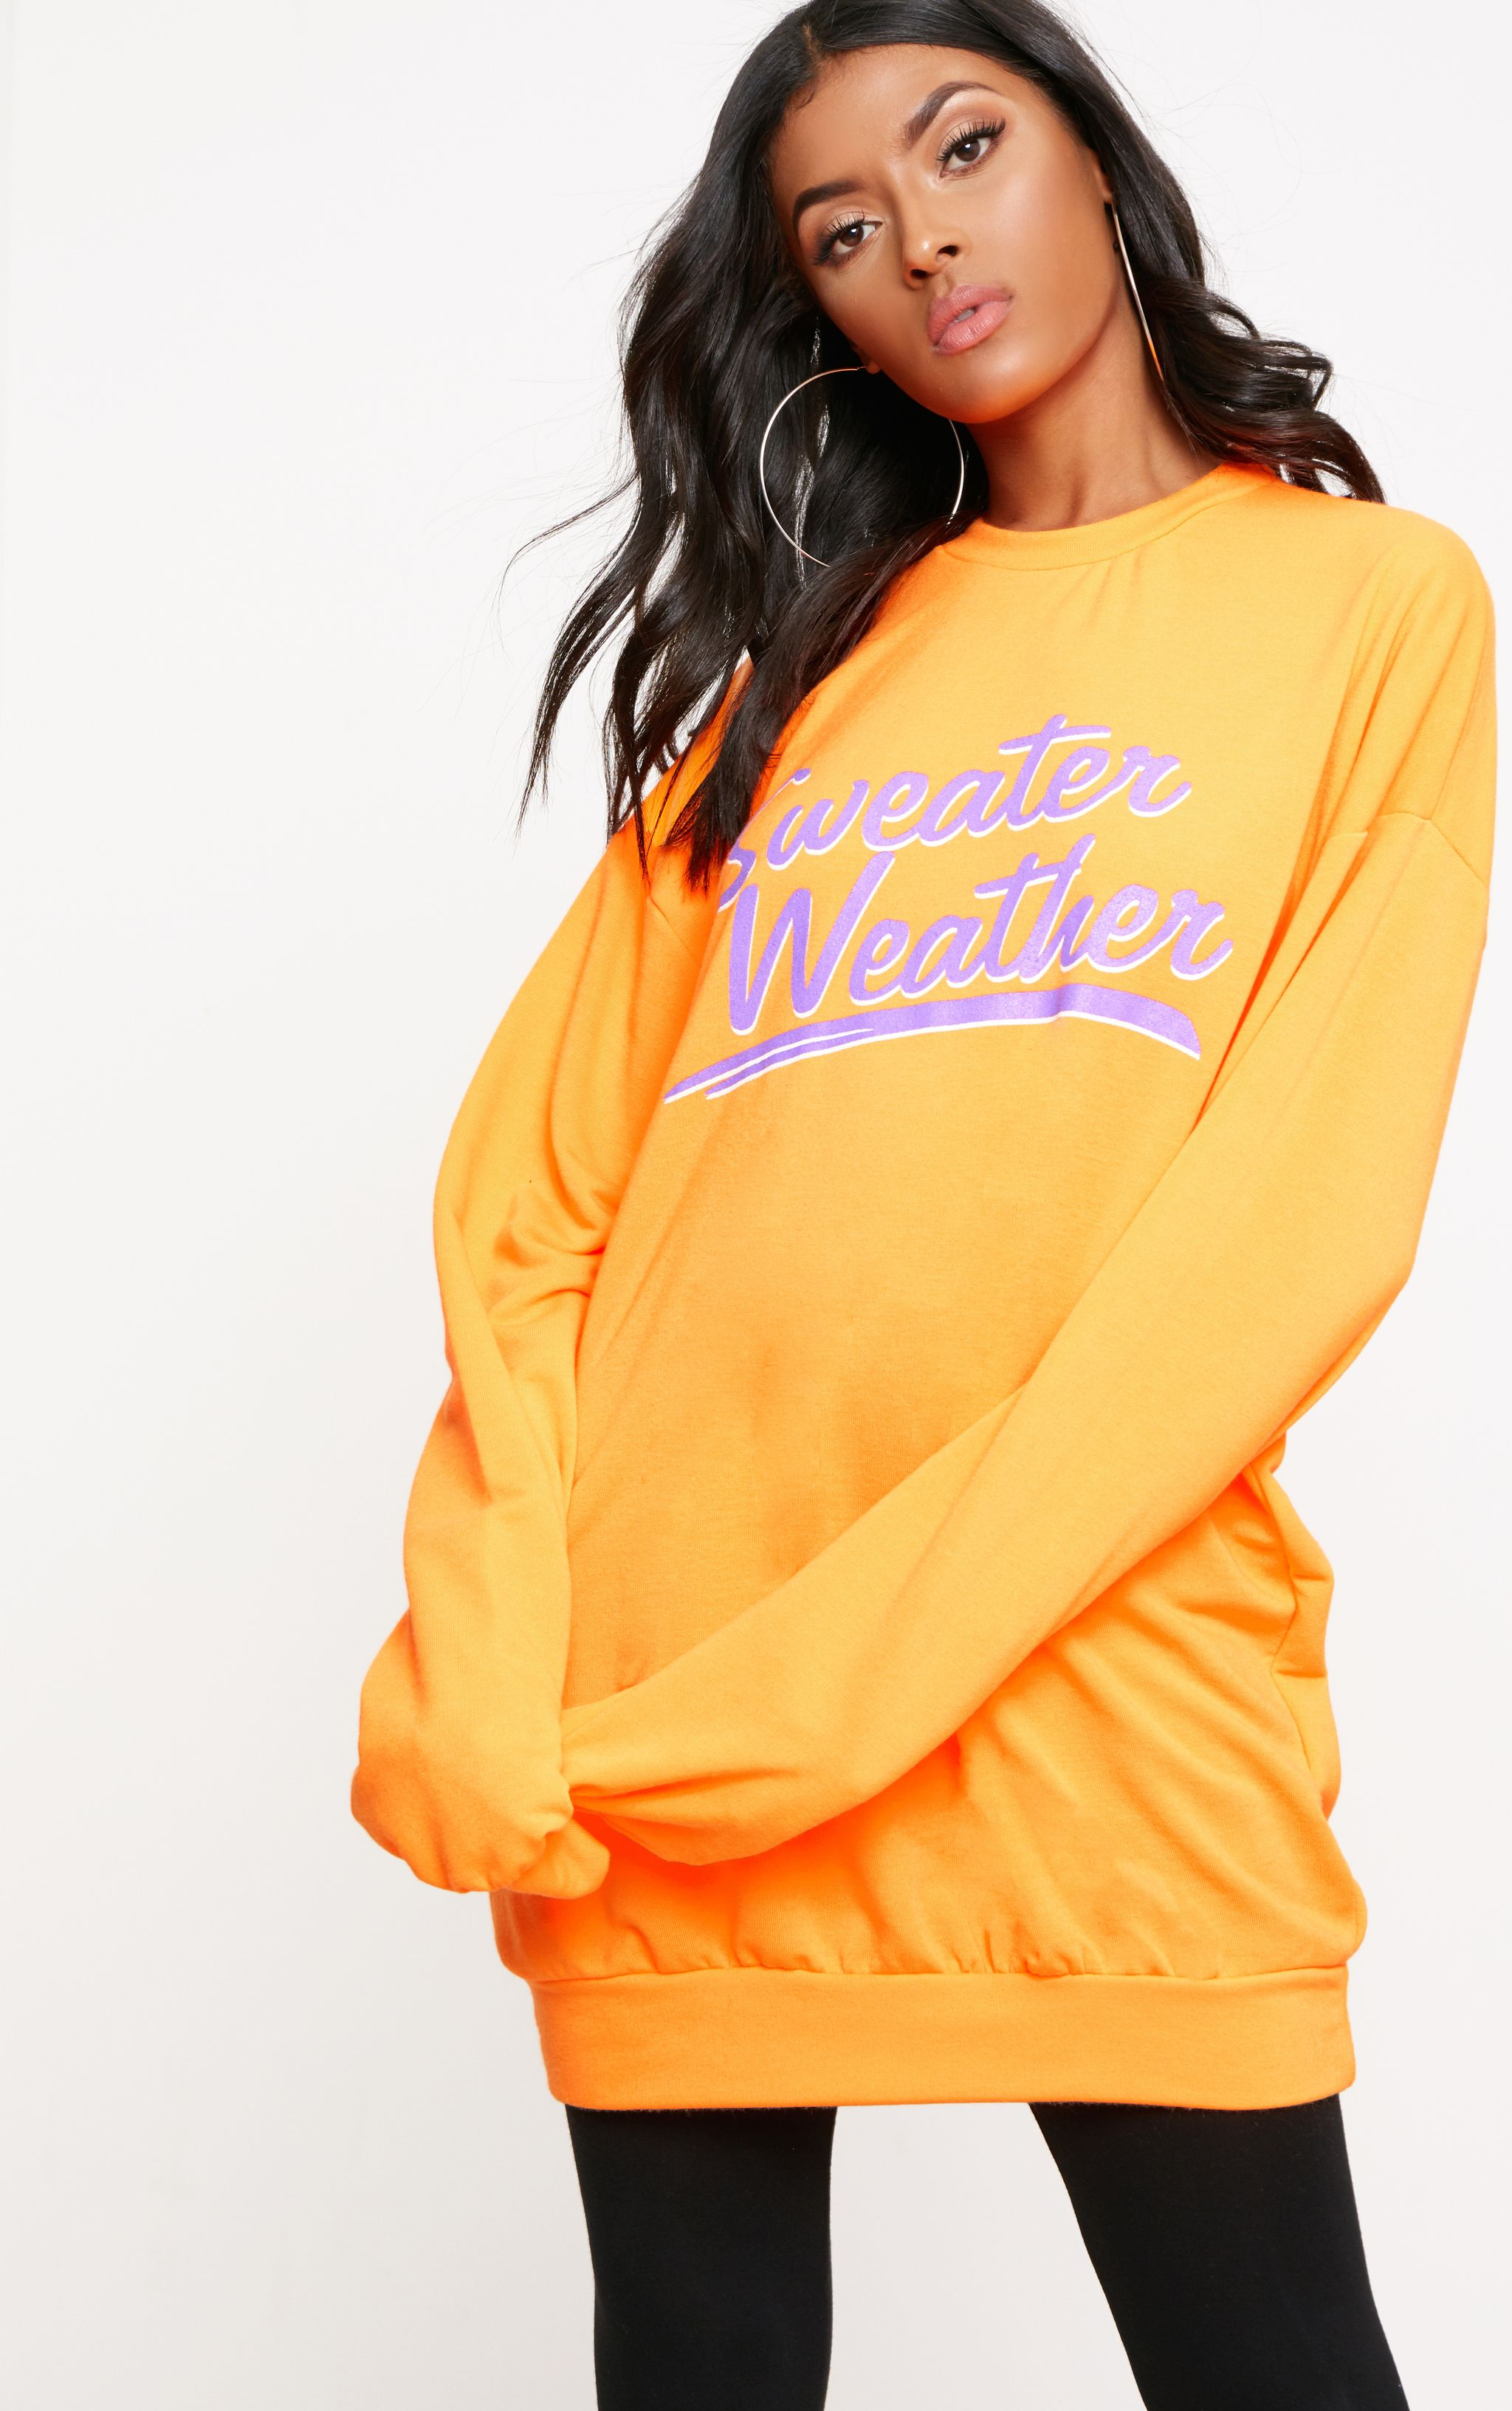 Orange Sweater Weather Slogan Sweater